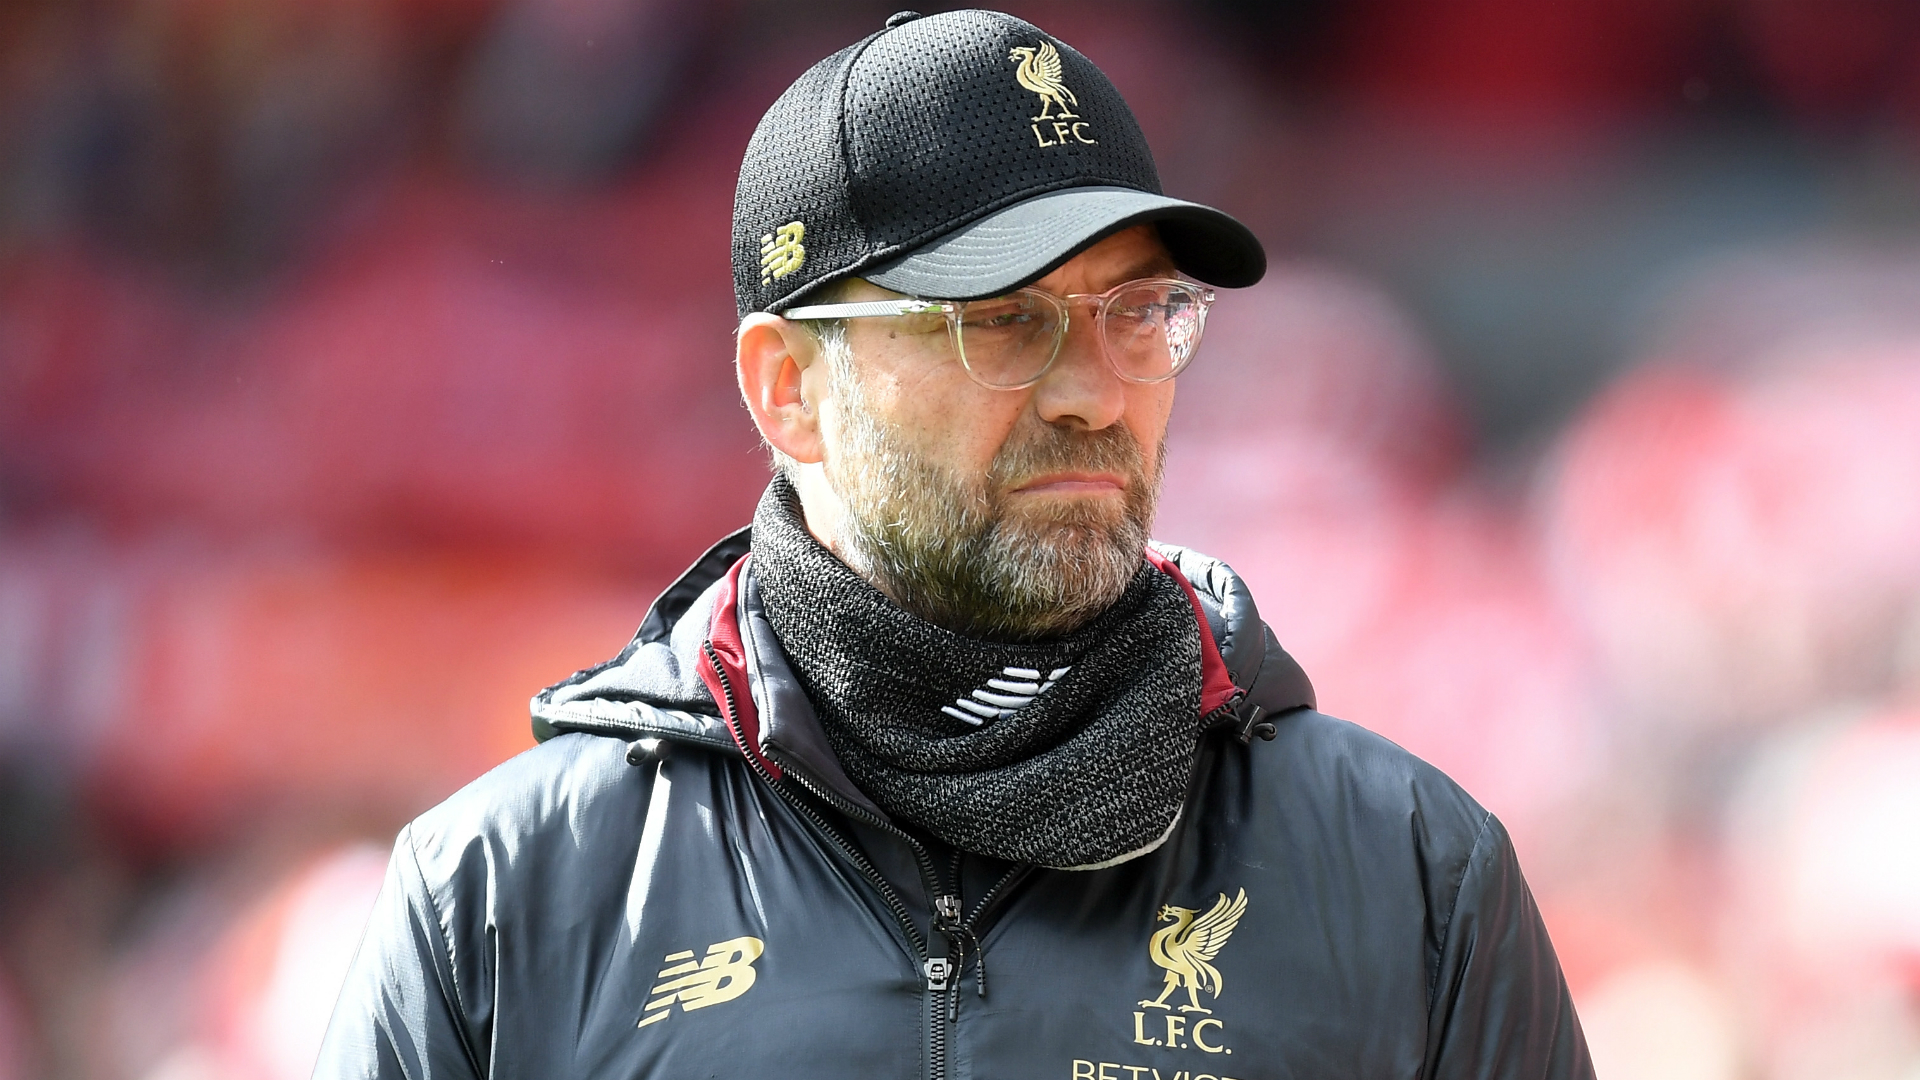 Liverpool won't spend big on transfers – Klopp